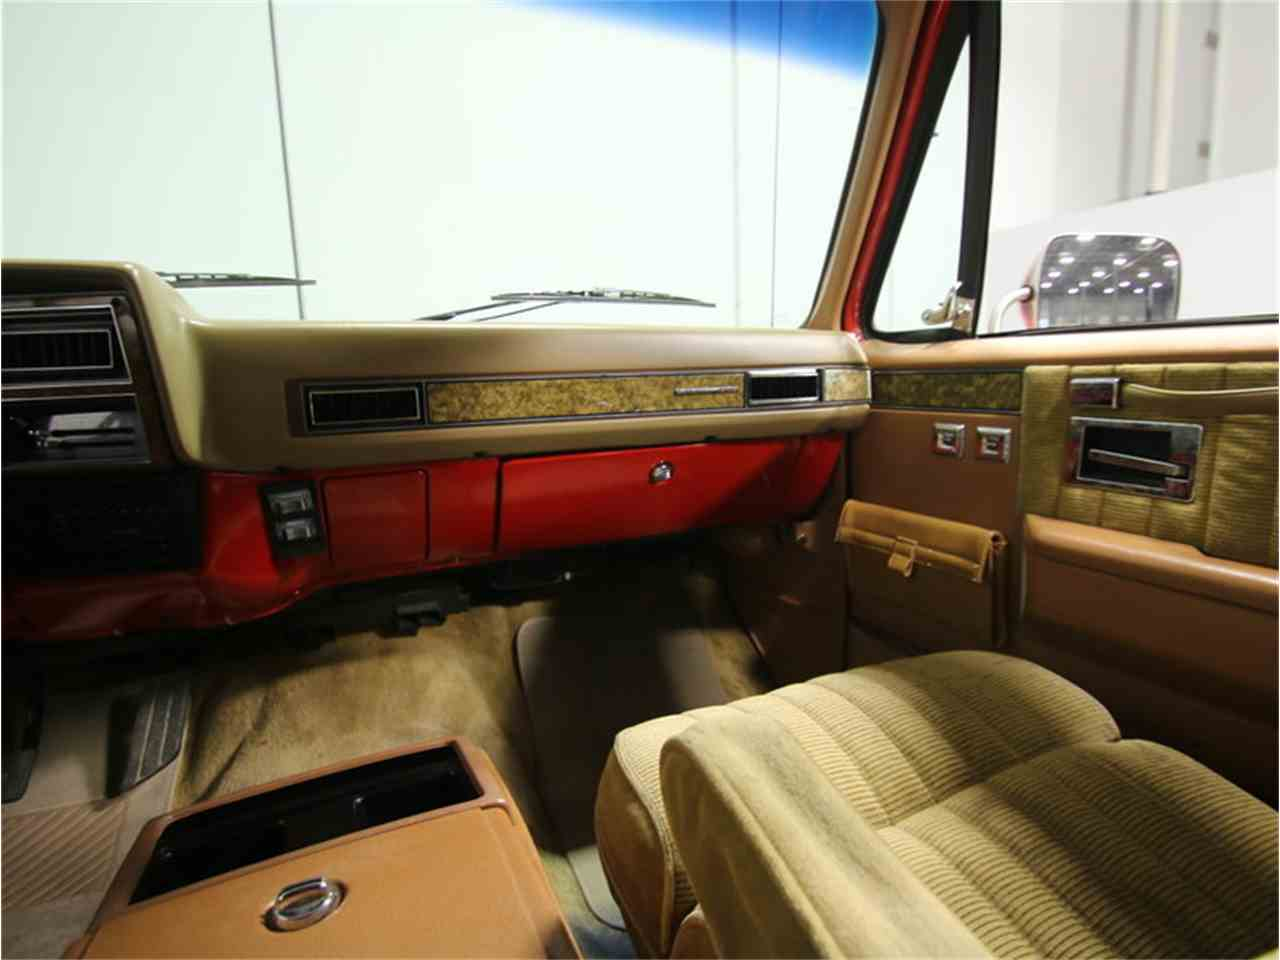 Large Picture of 1985 Chevrolet Suburban located in Georgia - $11,995.00 Offered by Streetside Classics - Atlanta - KIU1